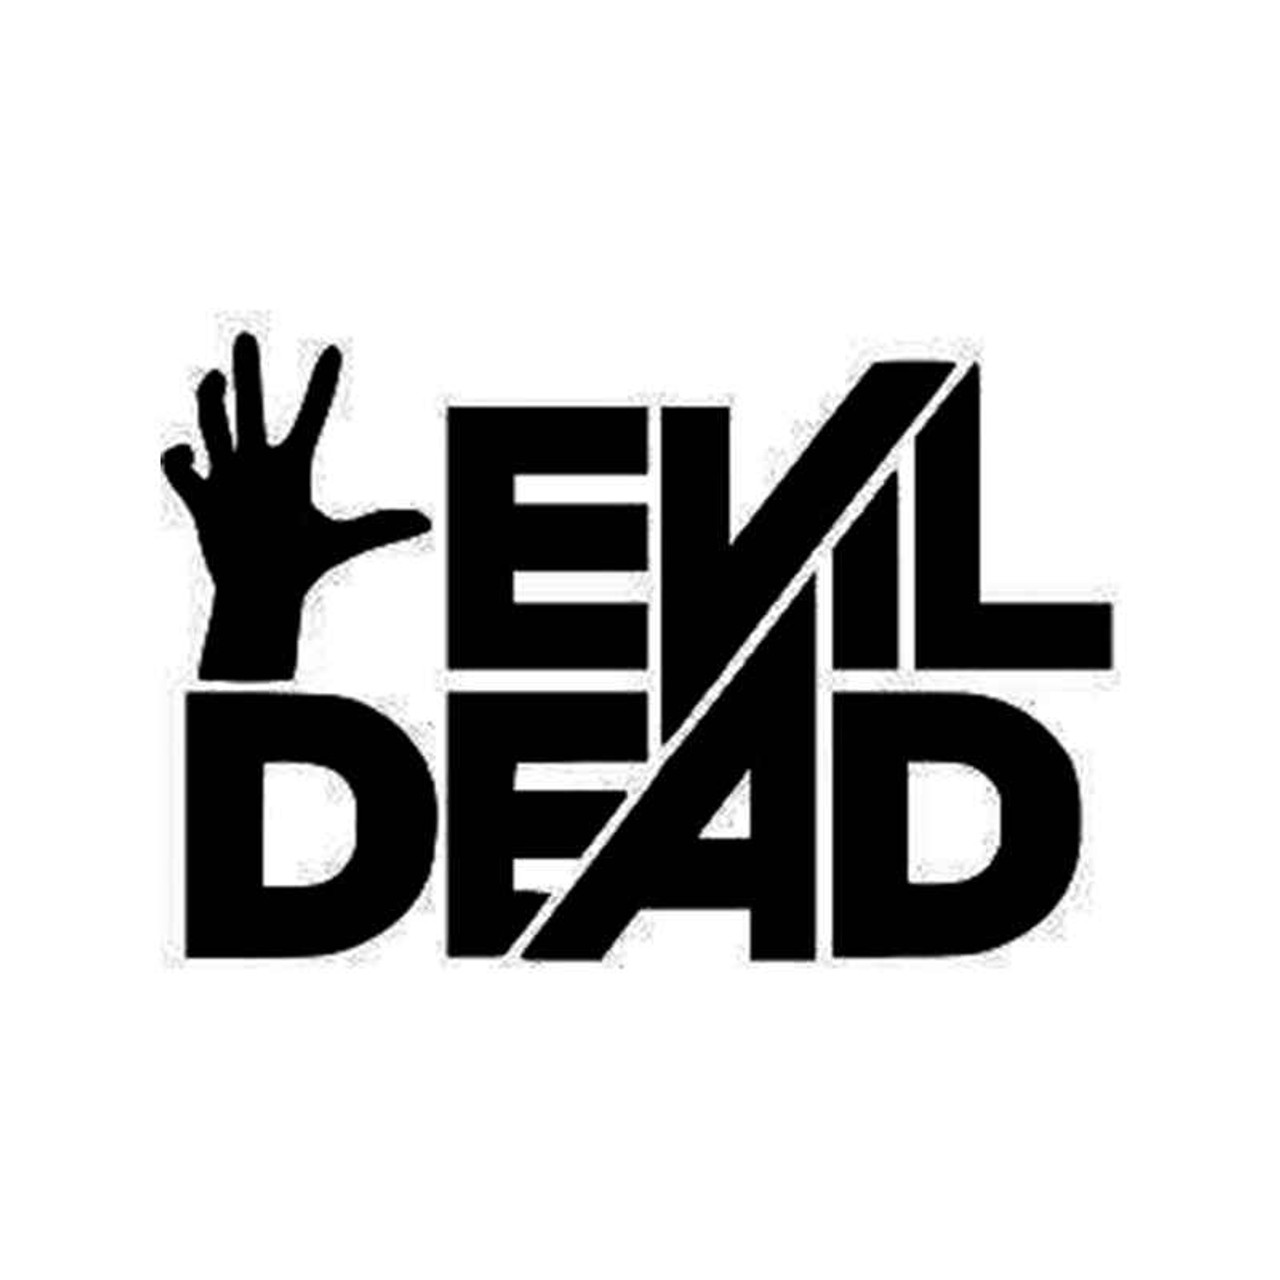 The Evil Dead Chainsaw Groovy Army Of Darkness Die Cut Vinyl Decal Sticker Decals City